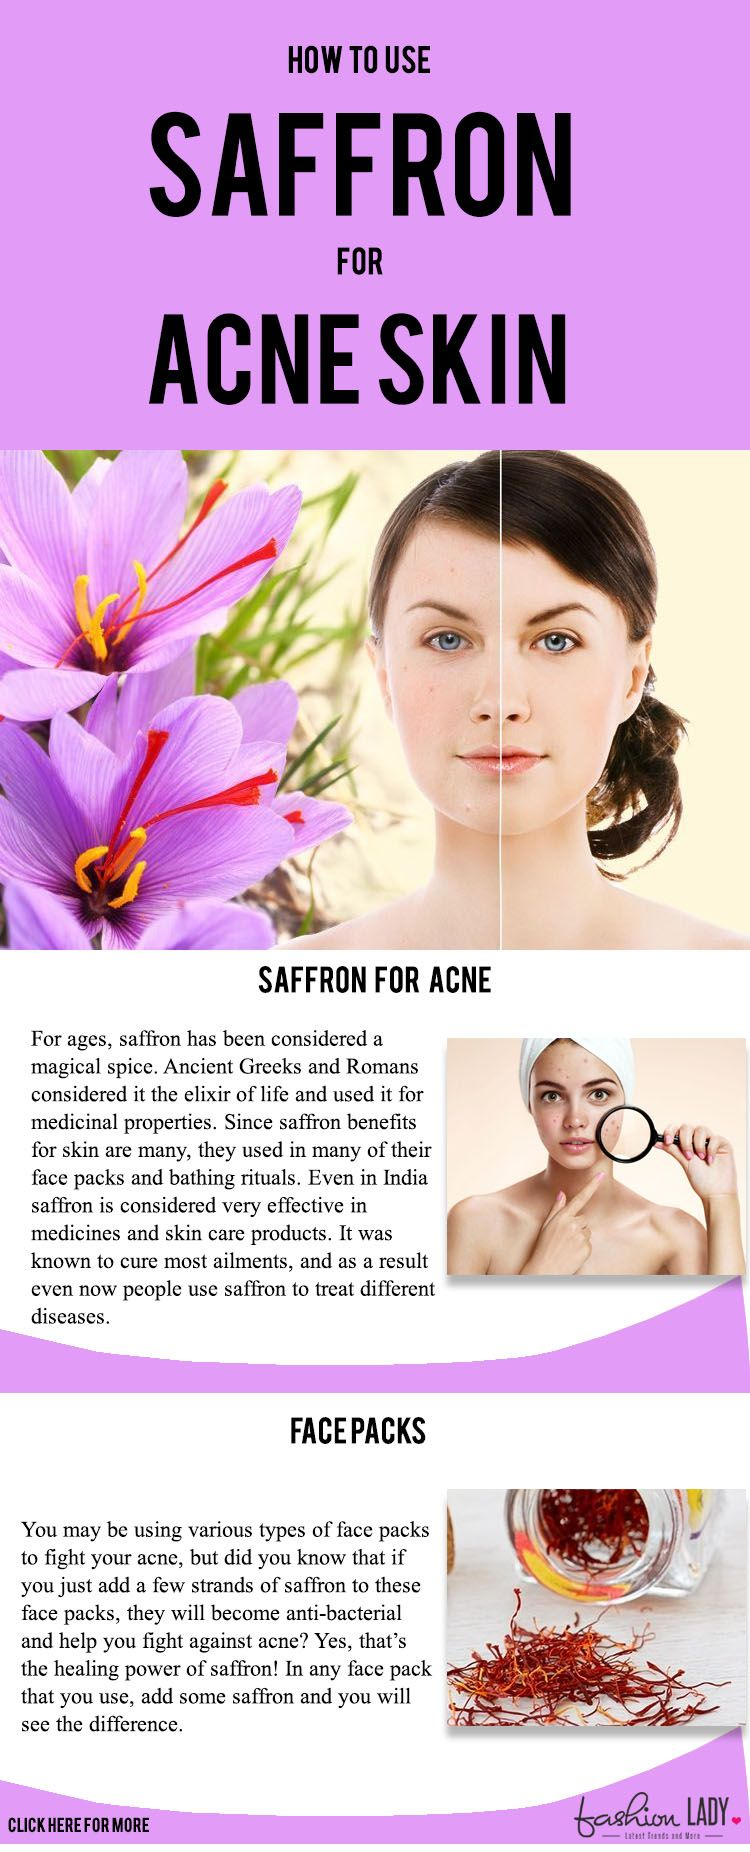 saffron for acne skin: how this spice can change your life